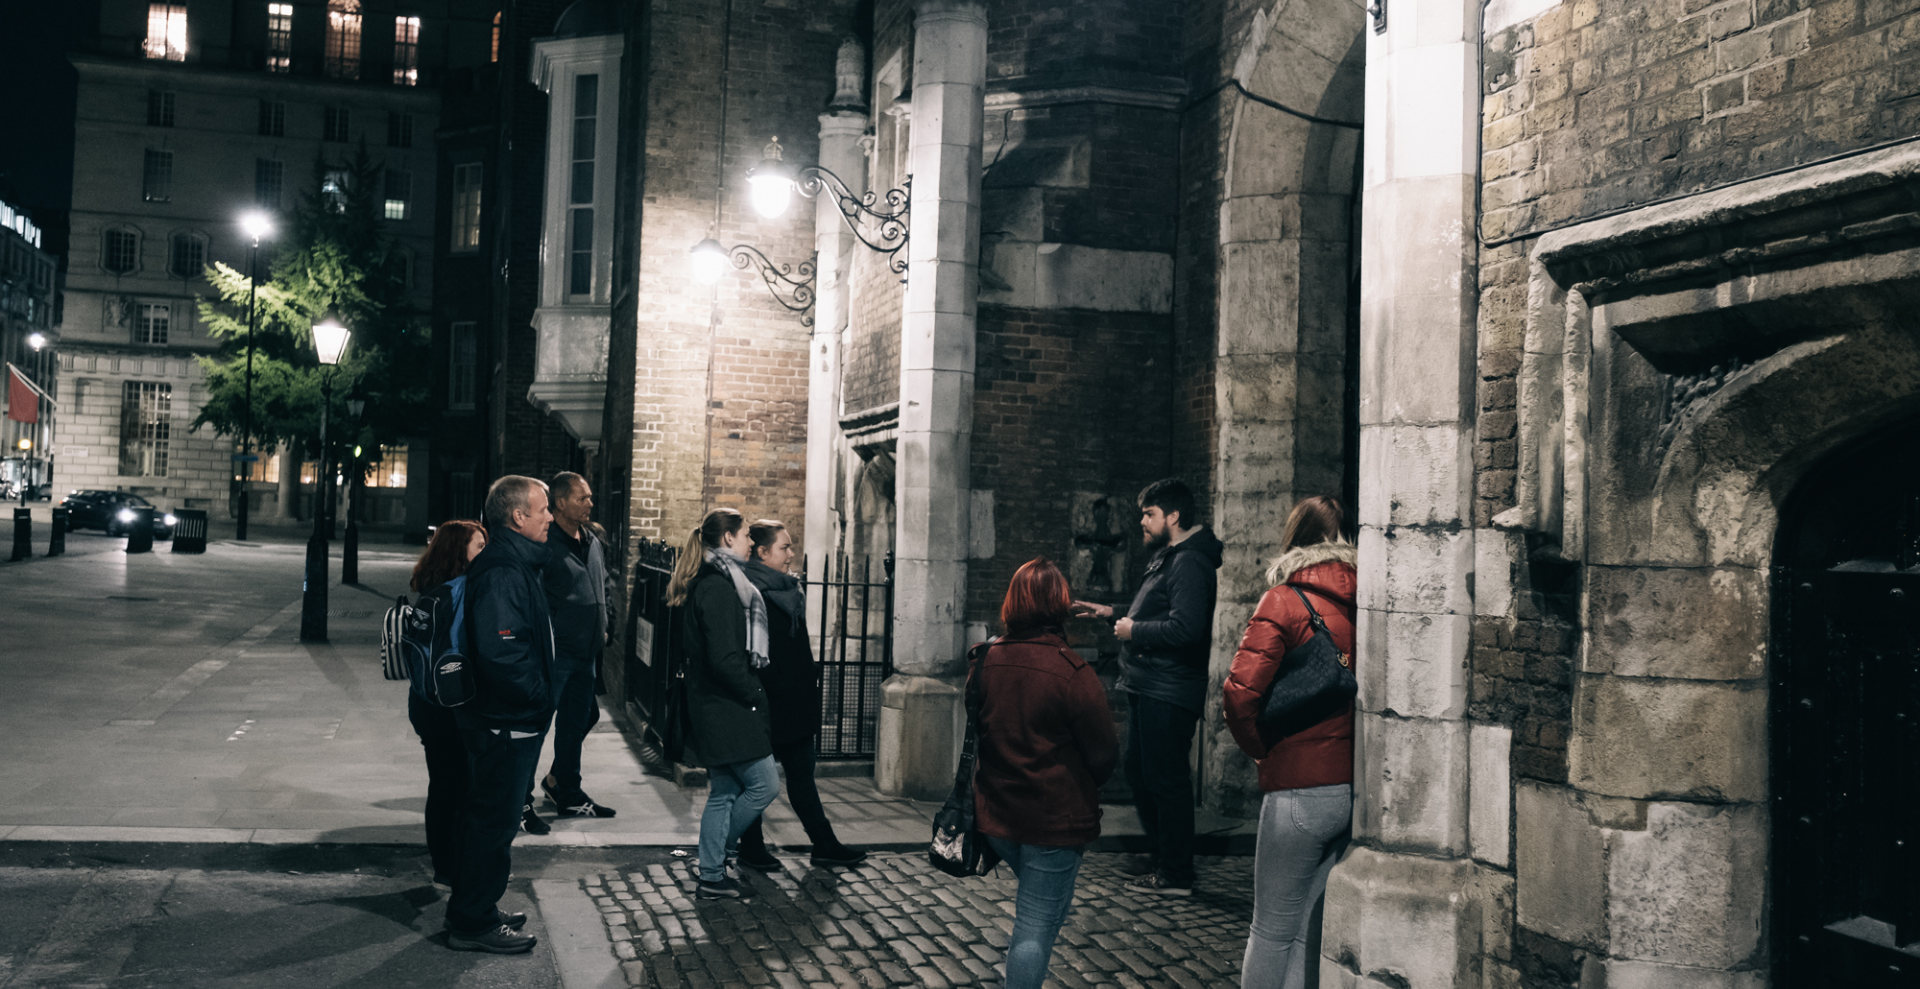 Ghost Tour of London with a Cruise on the Thames